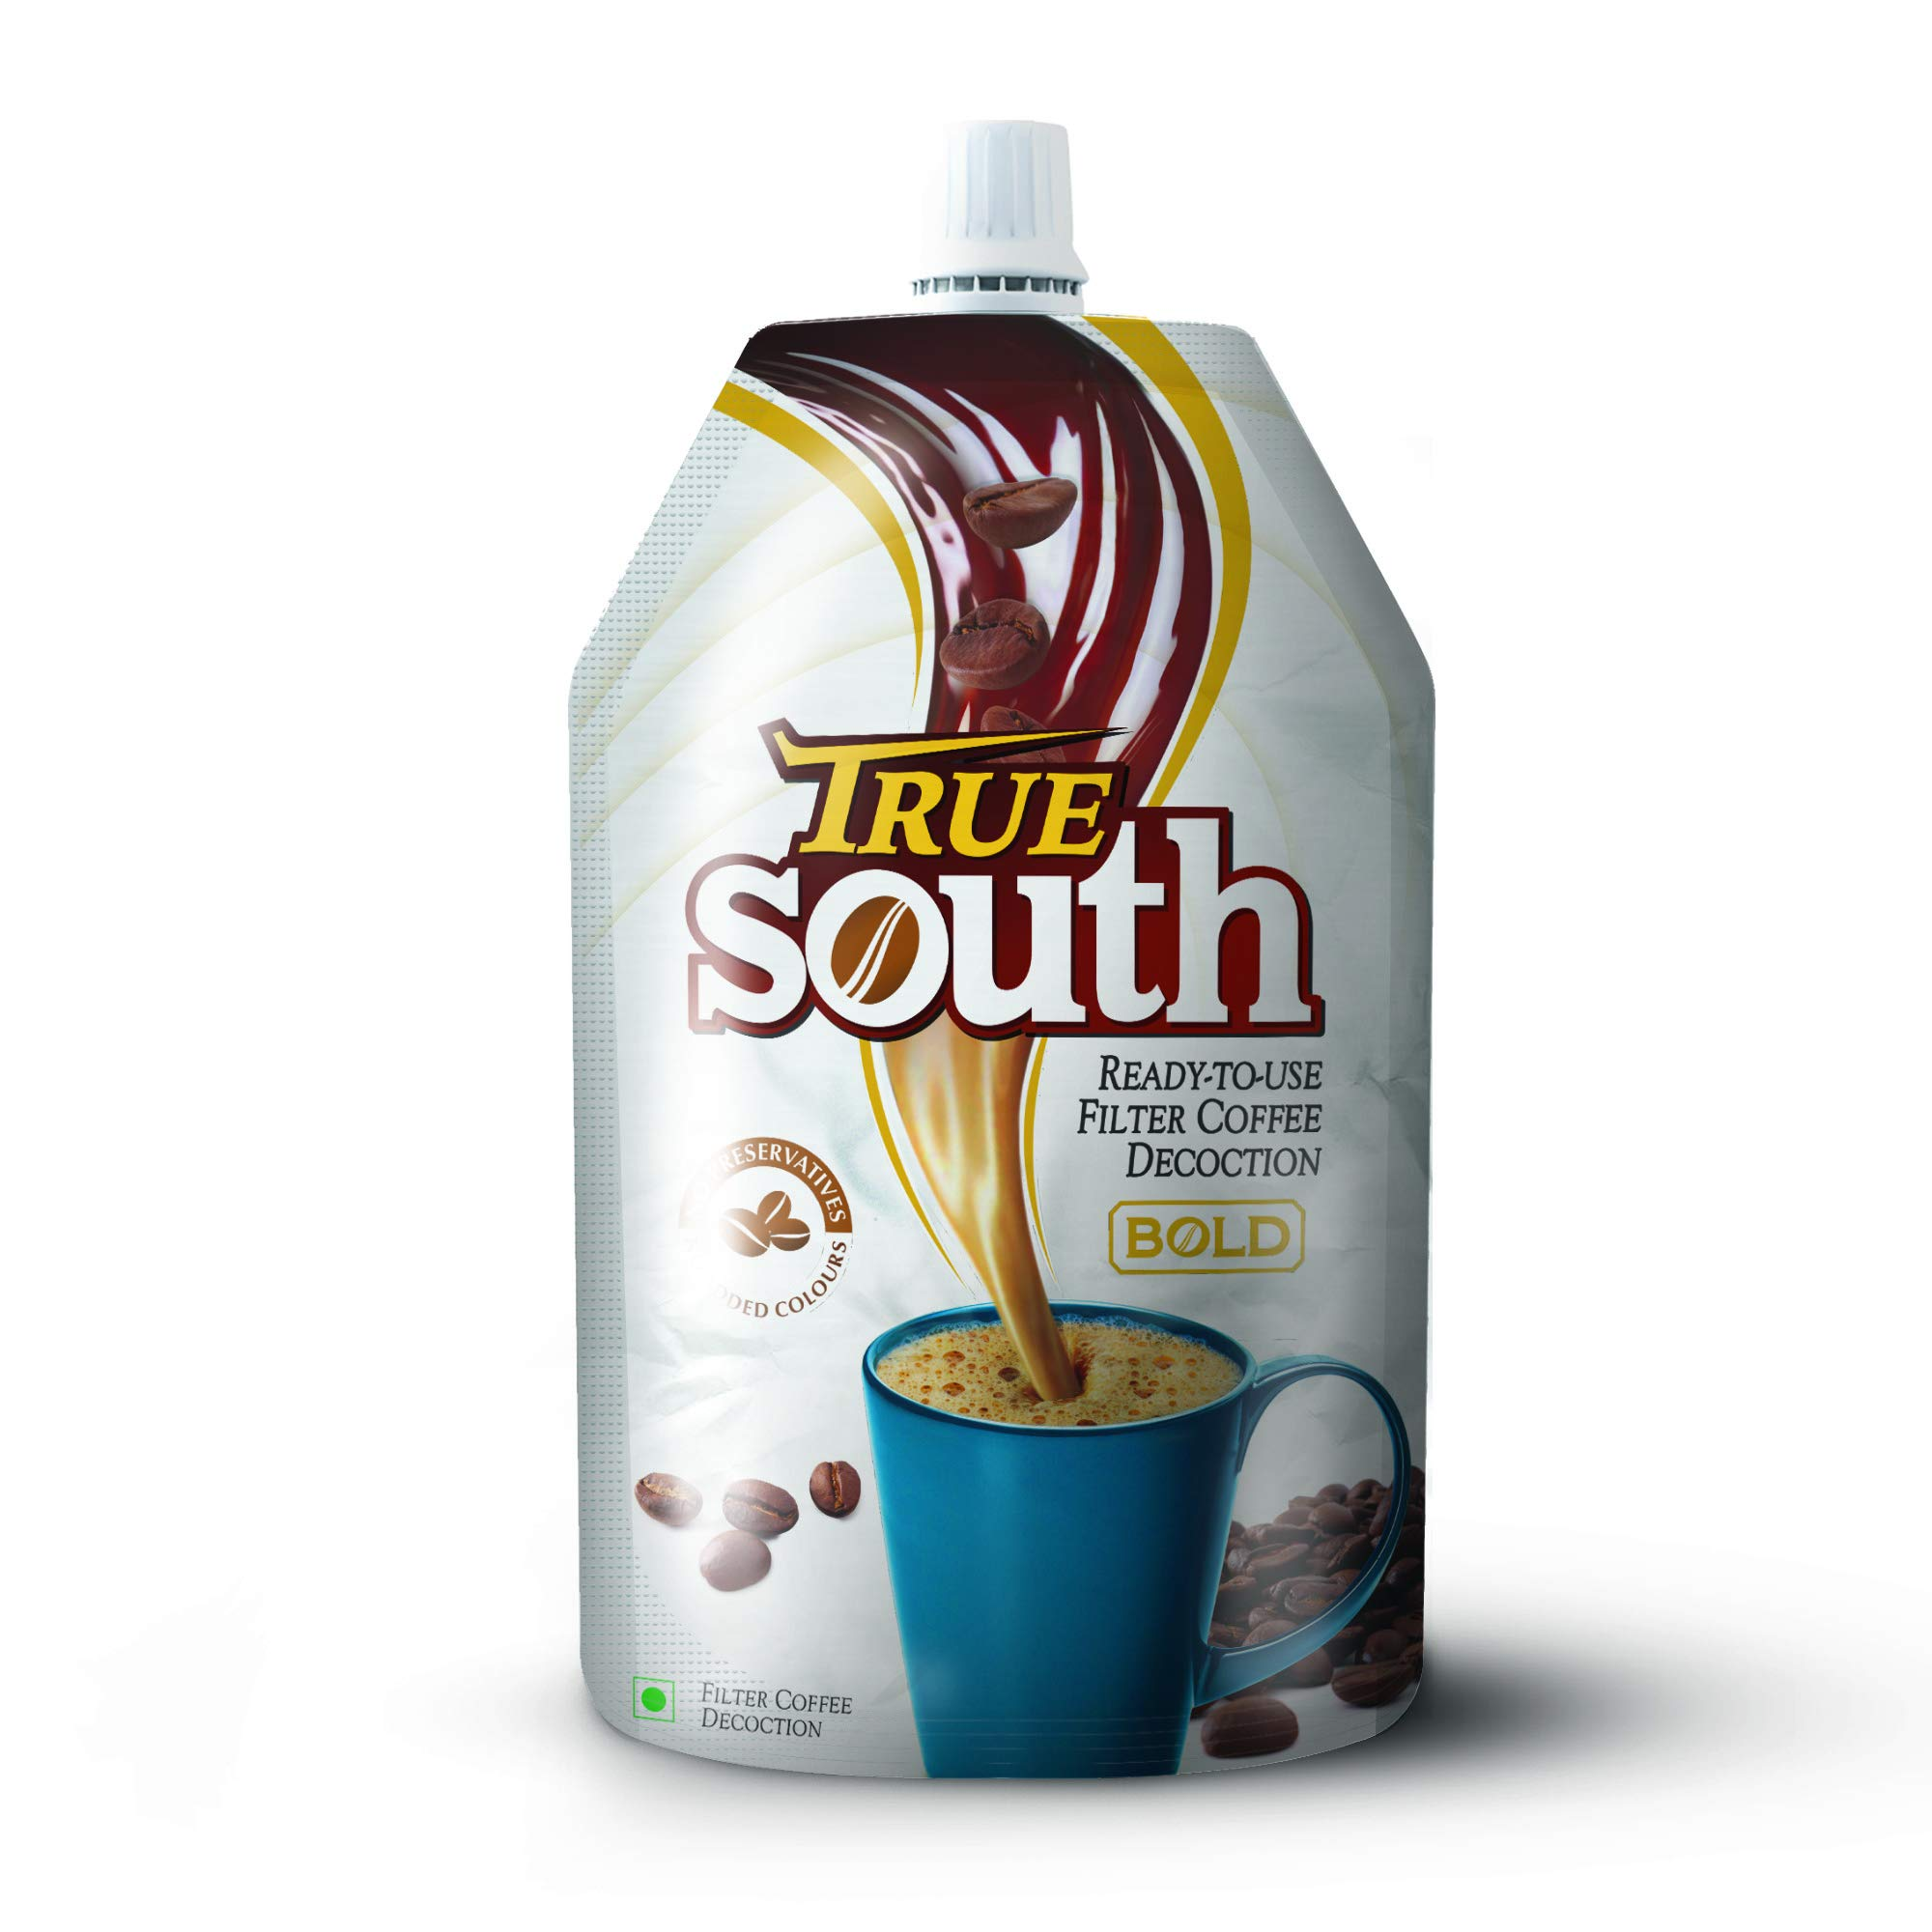 TrueSouth Bold - Ready To Use Filter Coffee Decoction (250 ml)